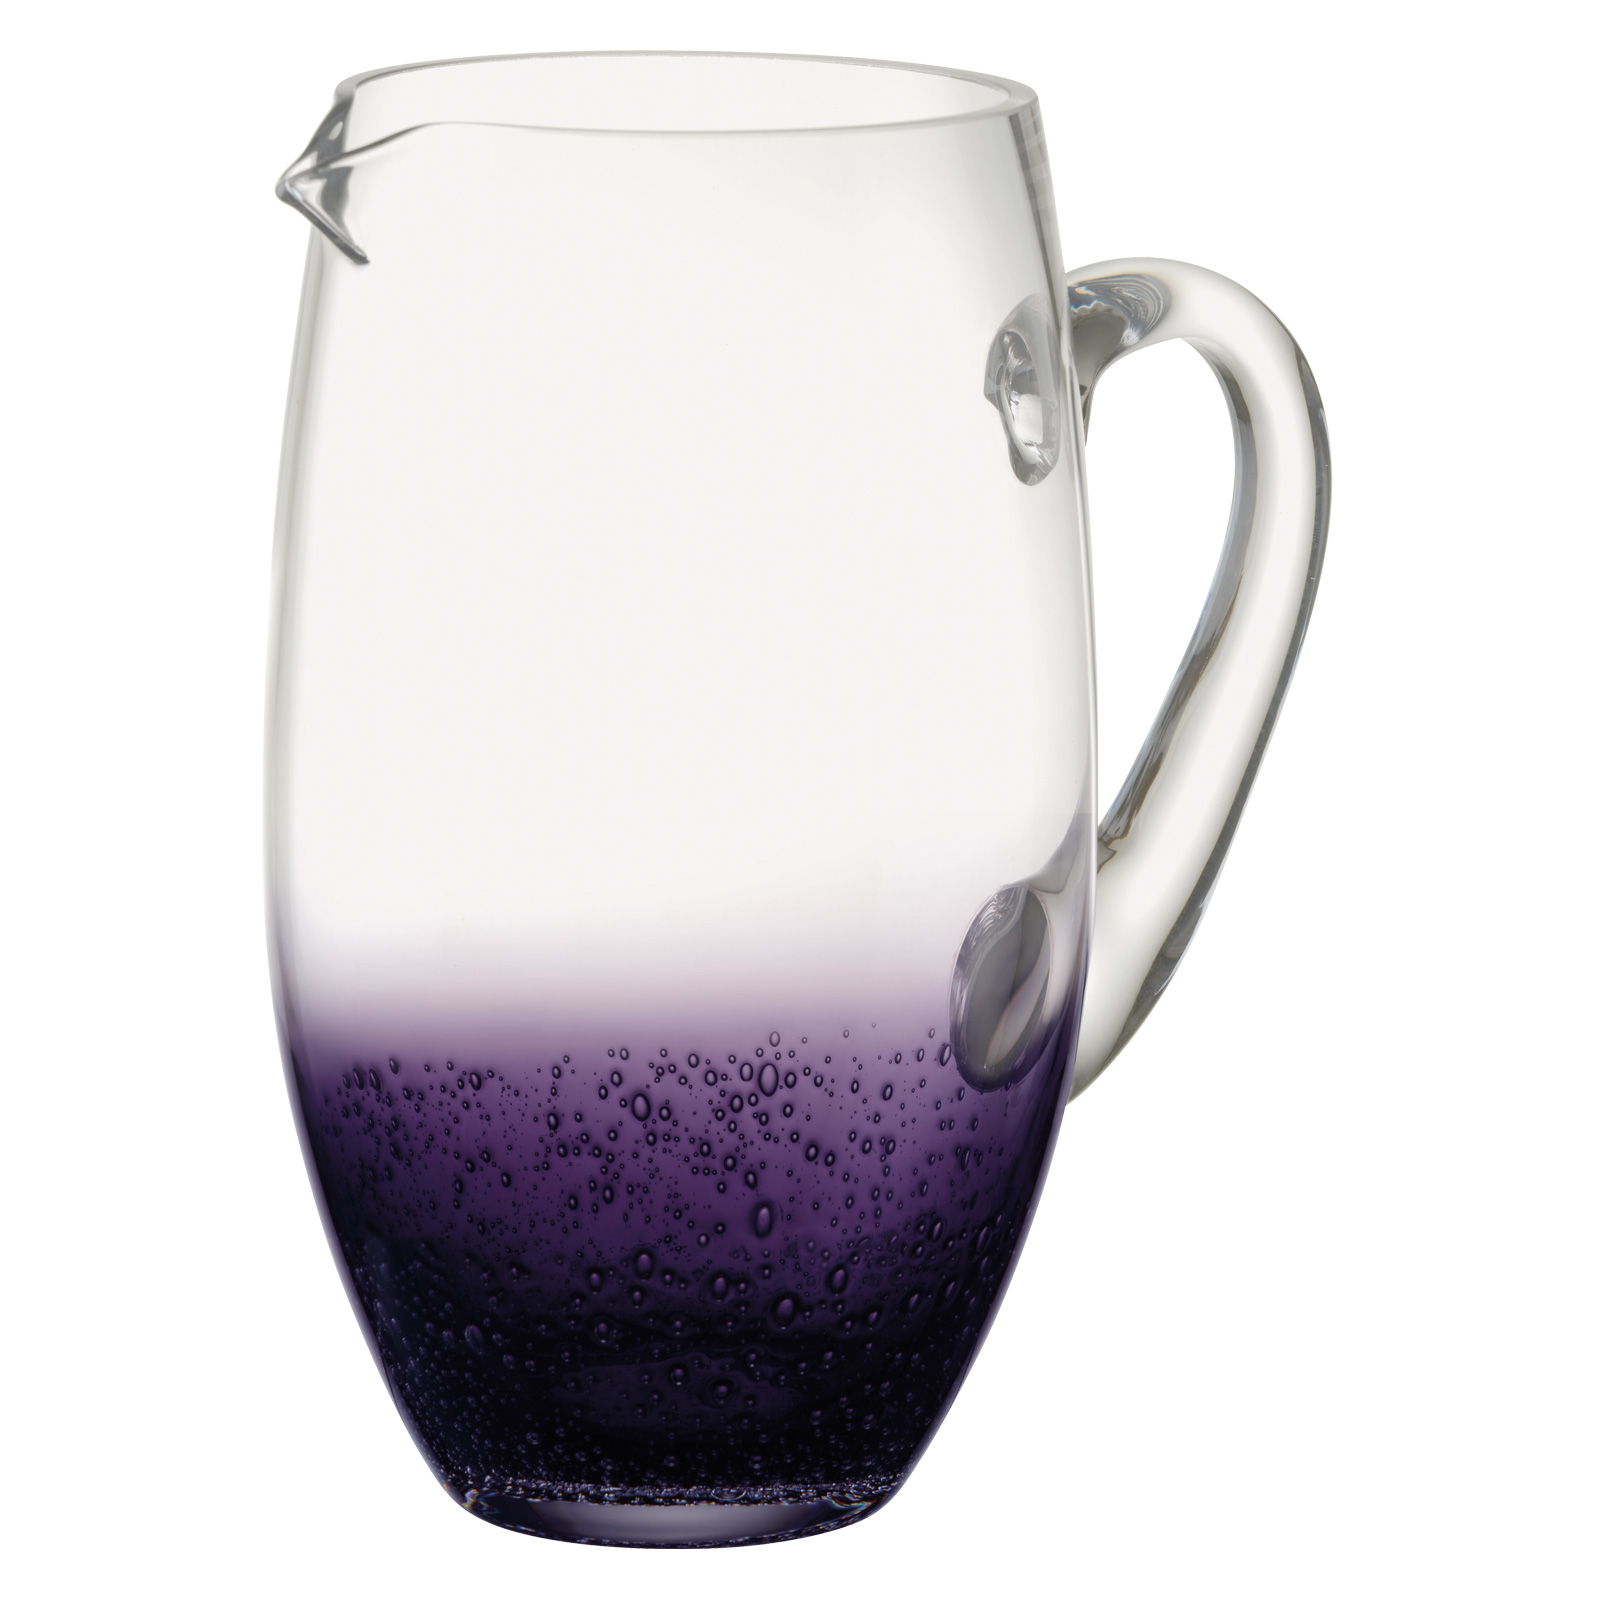 Fizz Purple Jug by Anton Studio Designs